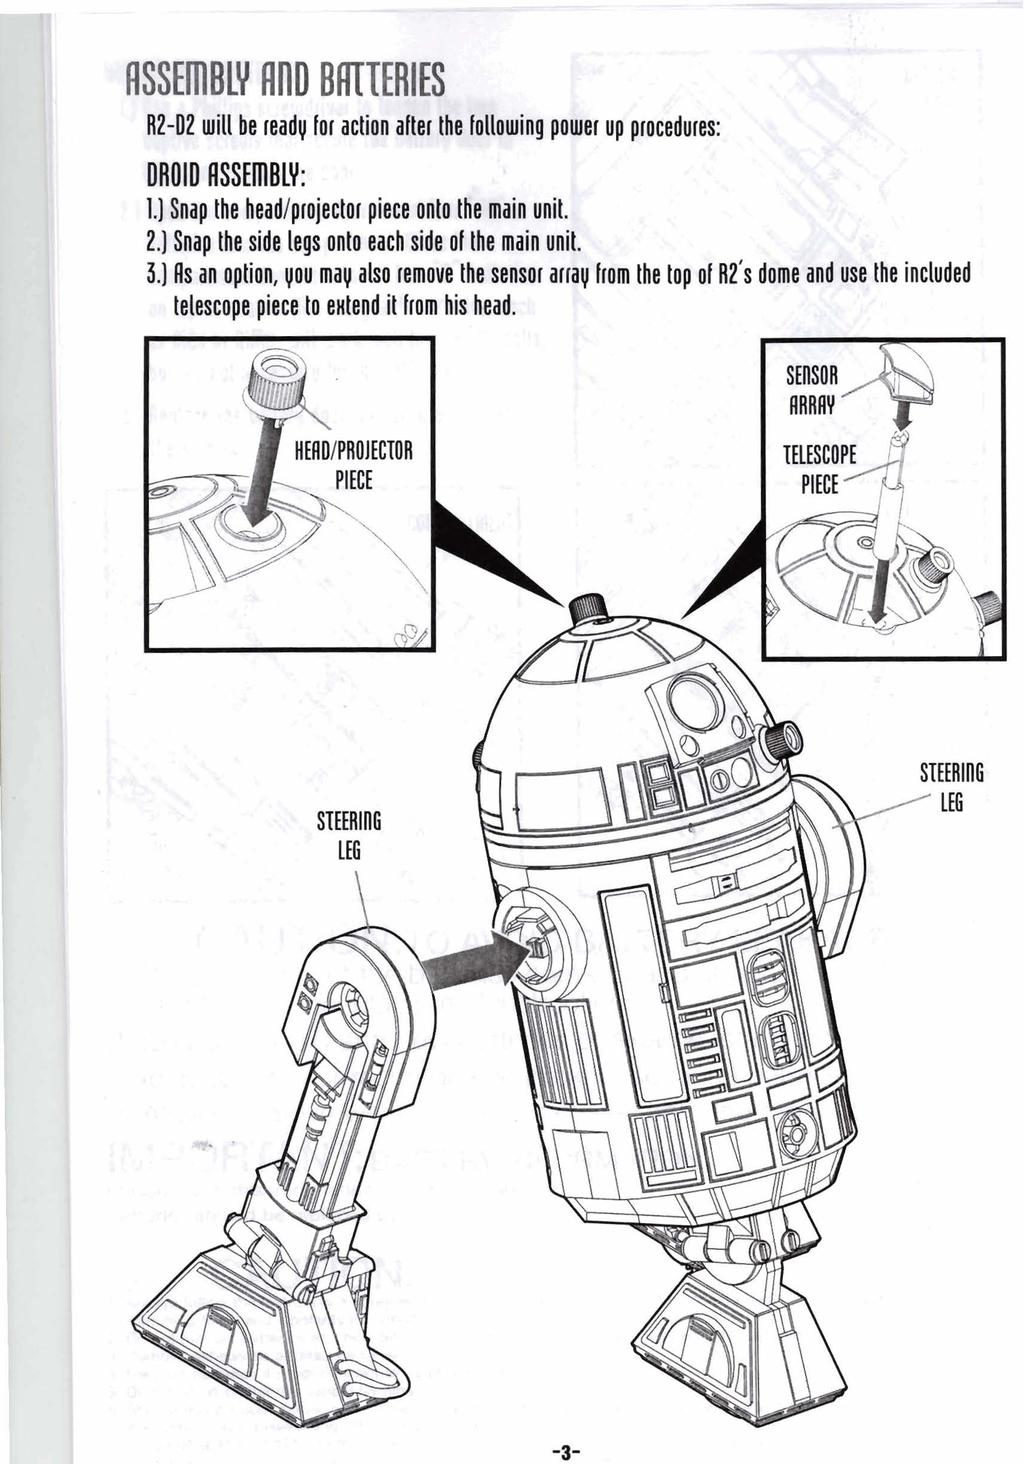 R9 On His Own Page 12 Pdf Wireless Sensor Battery Replacement Instructions For Safewatch But If You Treat R2 02 With The Same Loyalty And Dedication That He Will Give To This Little Droid May Help Follow In Footsteps Of